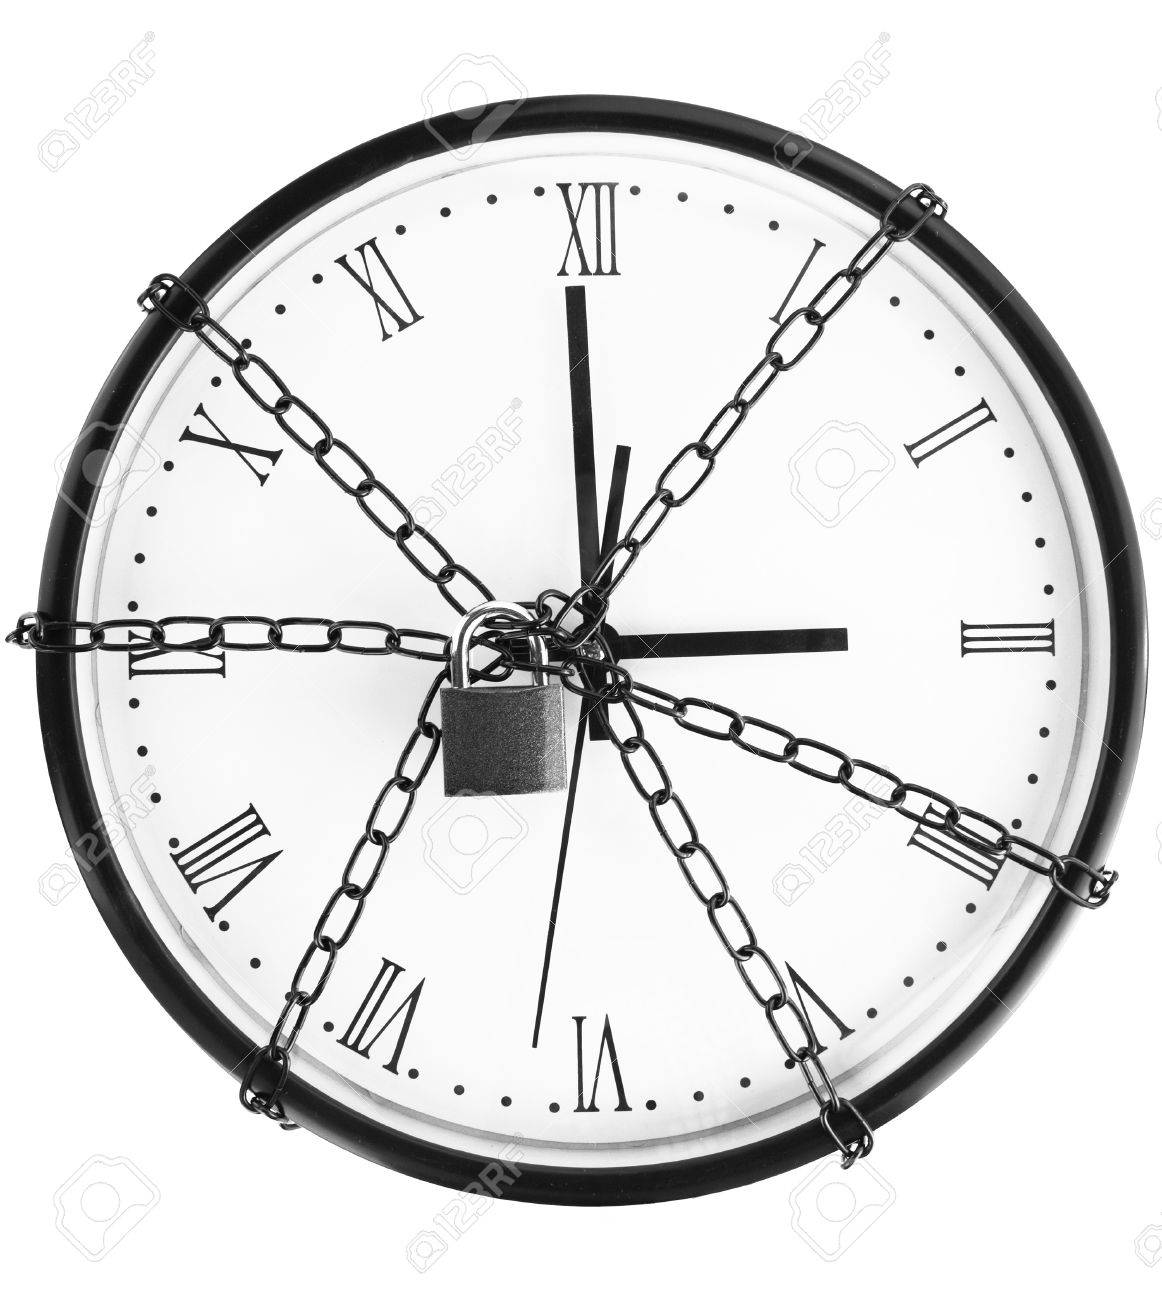 Clock bound with chain and padlock Stock Photo - 11014304